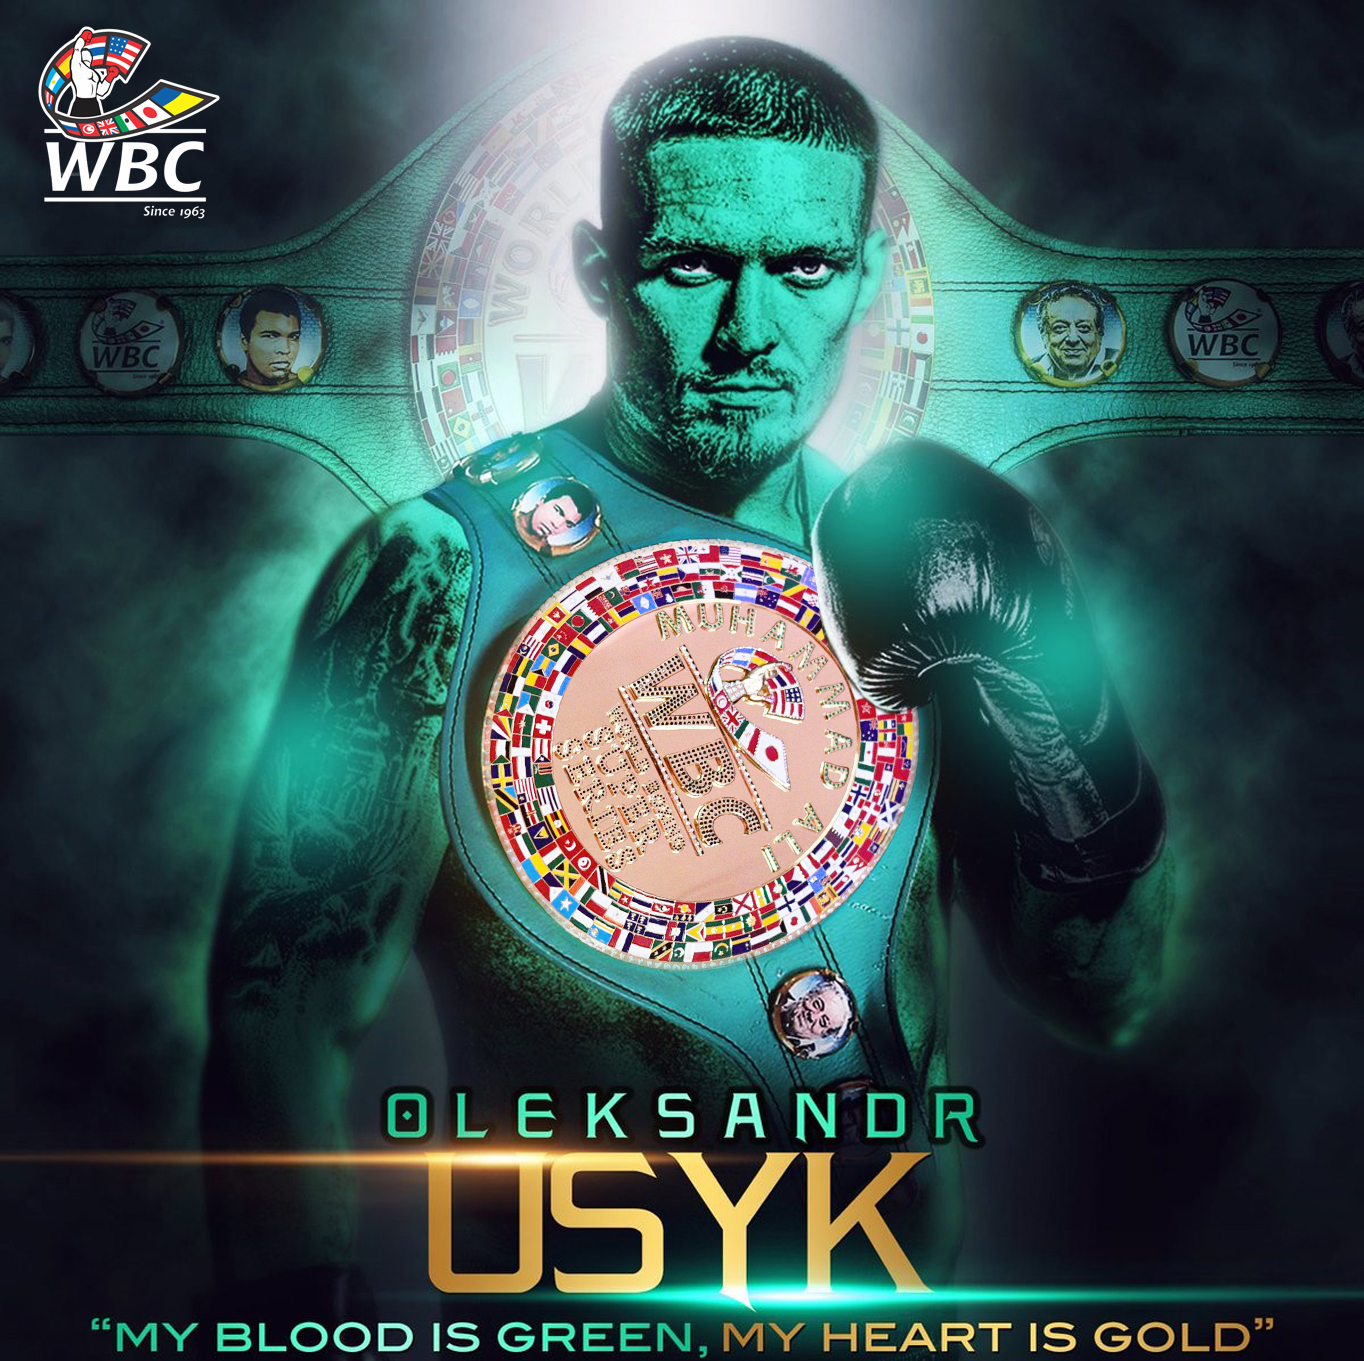 usyk-wb-diamond